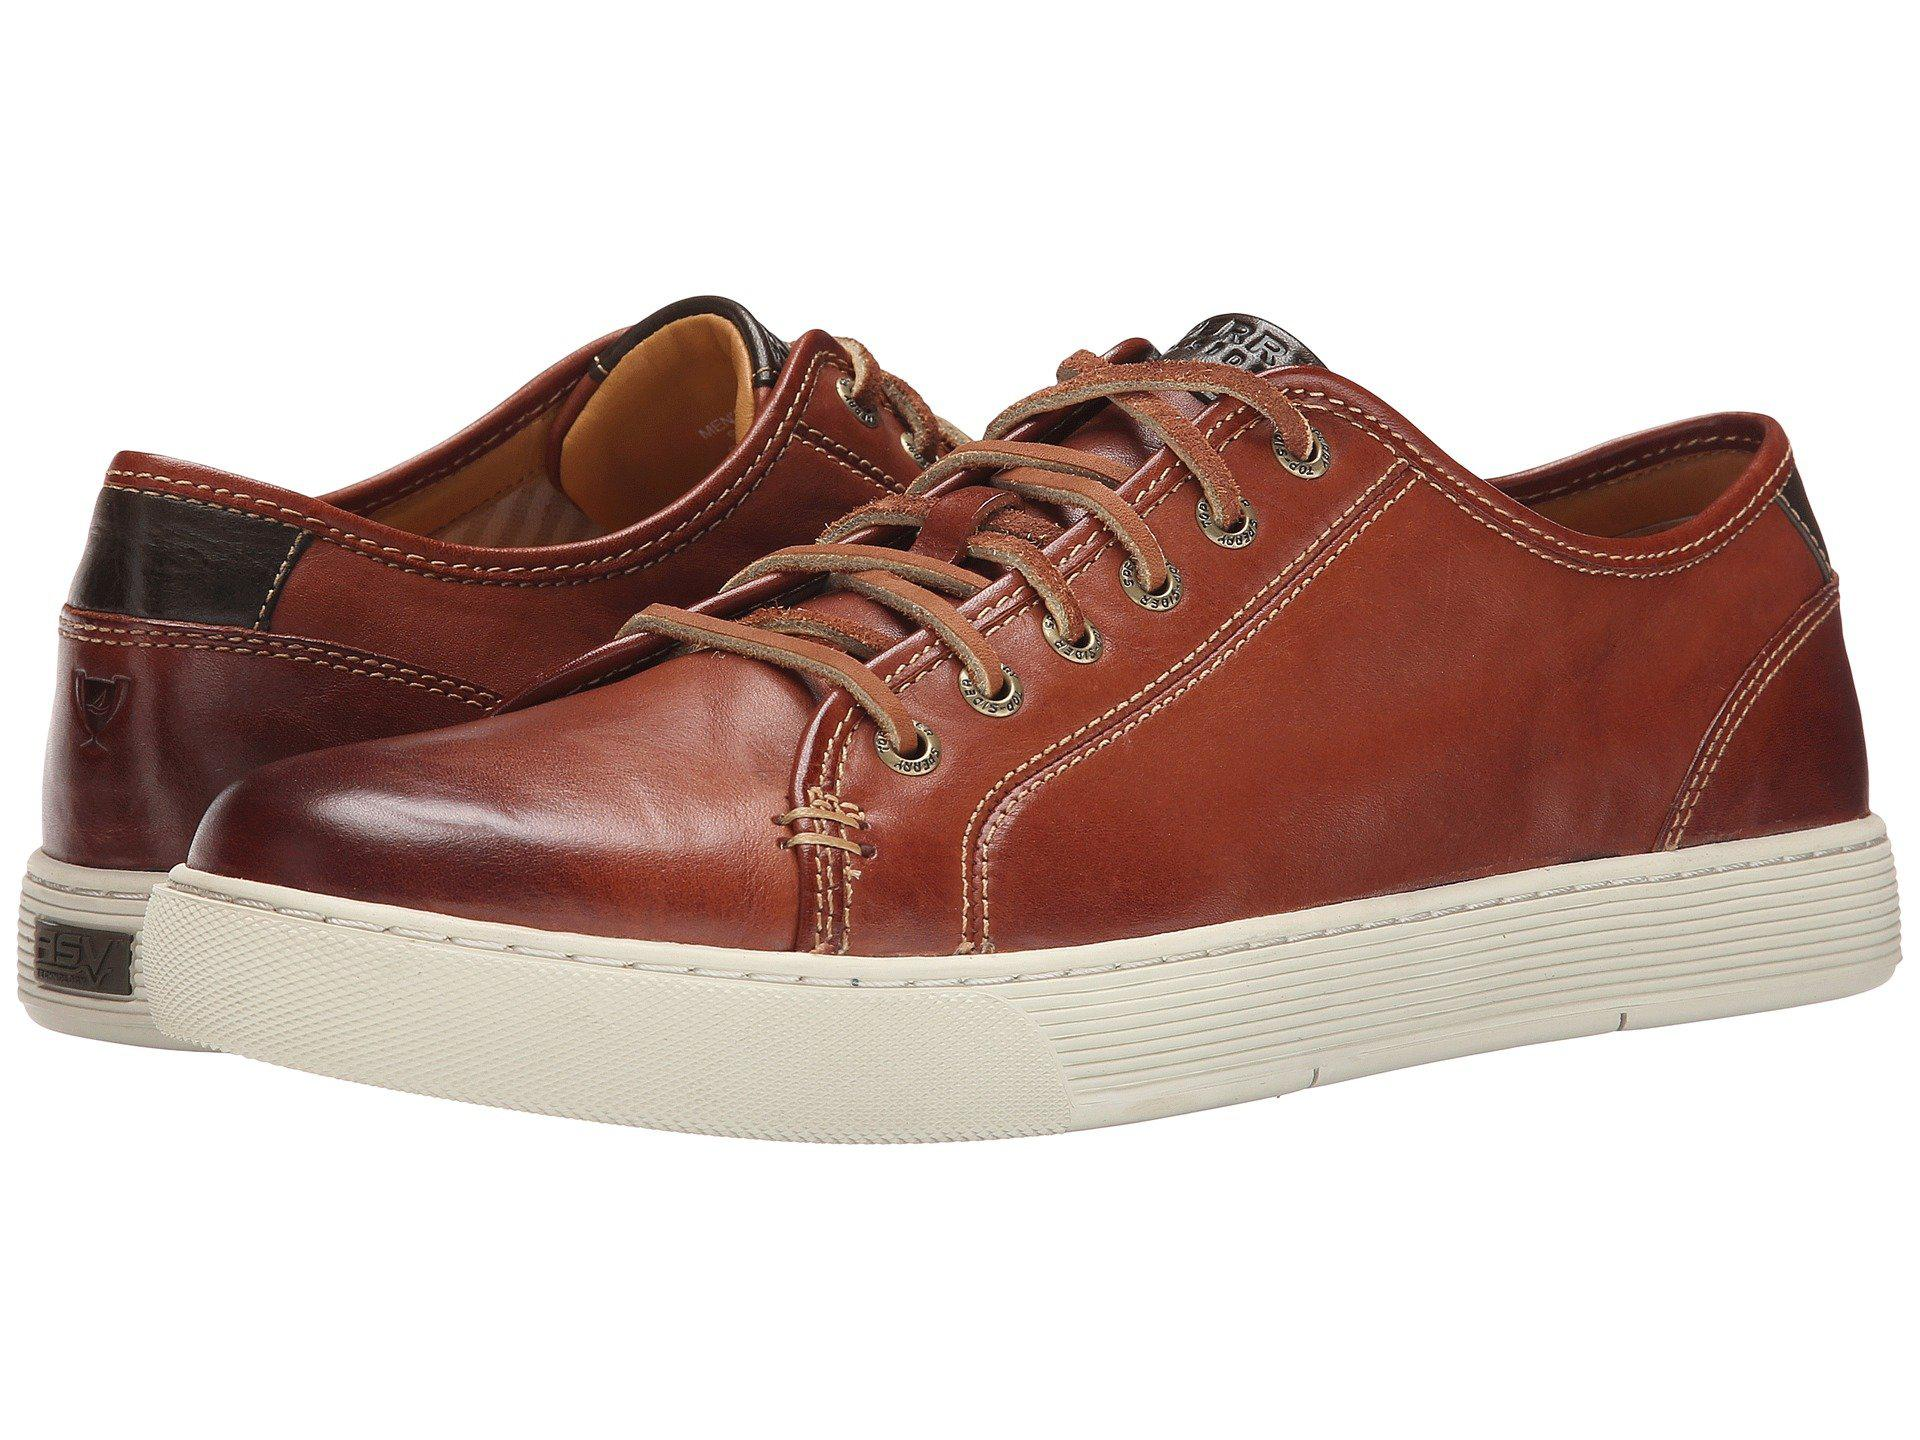 Sperry Top-Sider. Men's Brown Gold Sport Casual ...